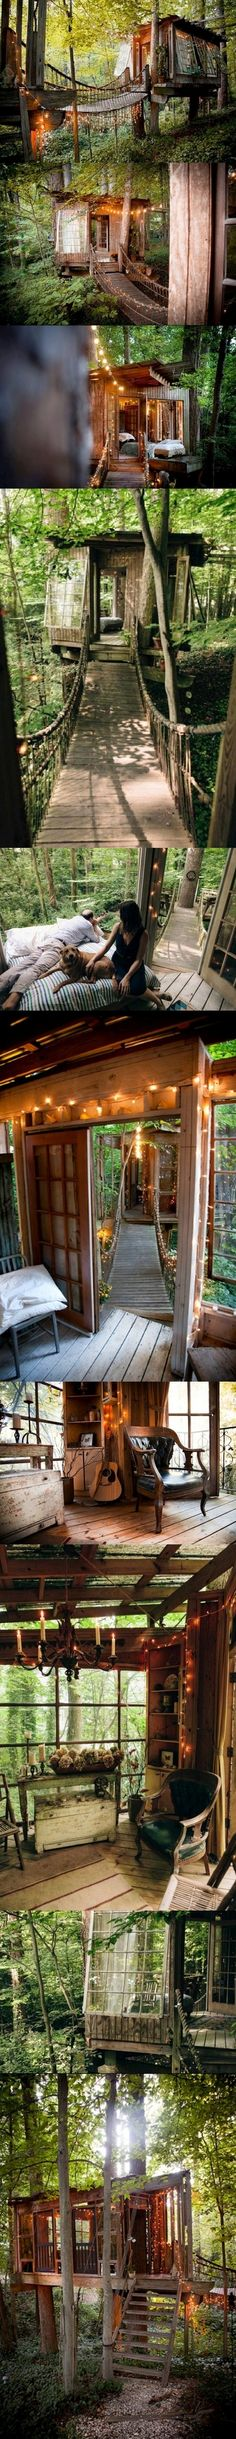 Architect Peter Bahouth built a series of houses in the trees connected by wooden bridges in Atlanta.Peter is an environmentalist whose love of nature and memories of boyhood treehouses inspired him to create a grown-up fort in his backyard http://www.goodshomedesign.com/peter-bahouths-treehouses/